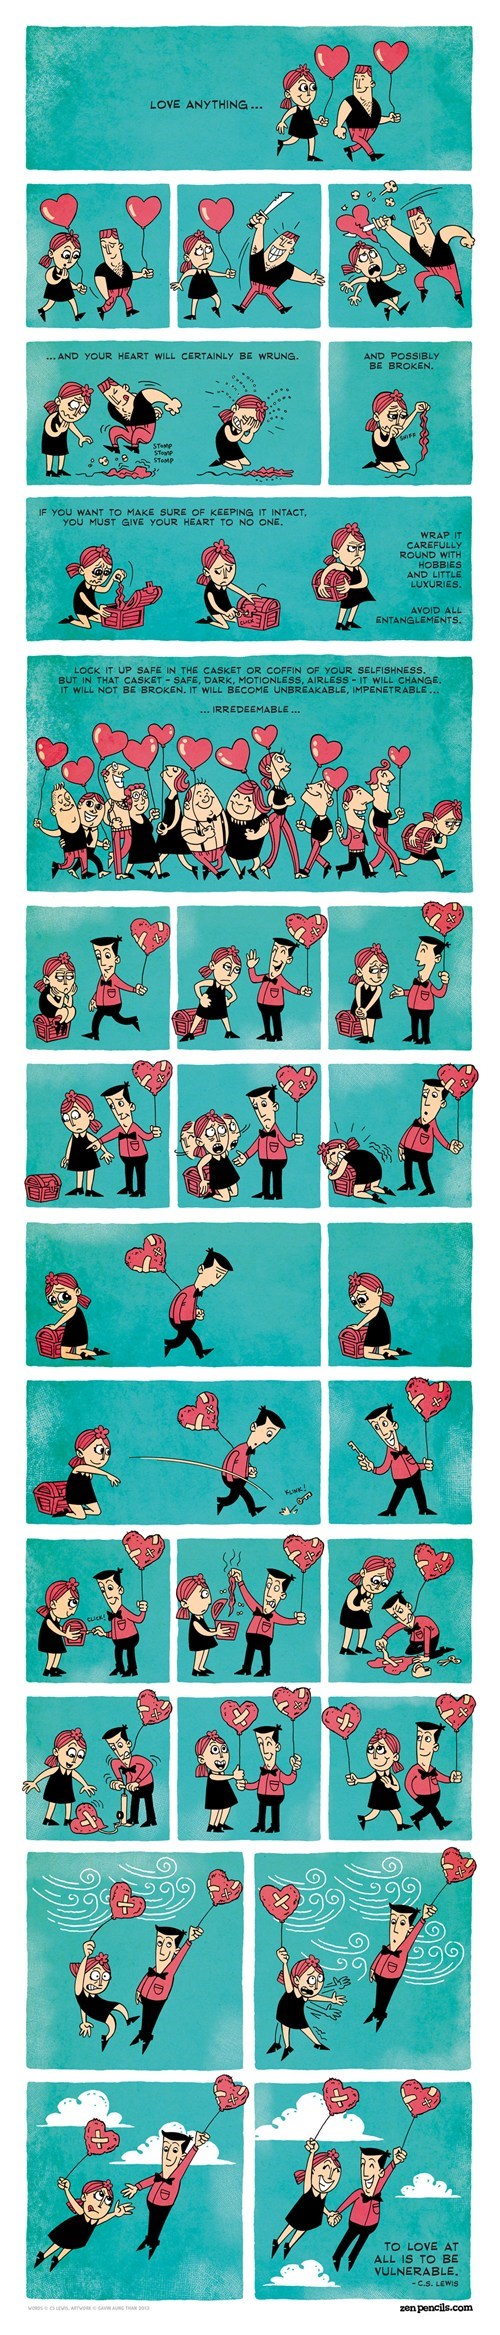 comics cs lewis love zen pencils dating fails g rated - 7055755520